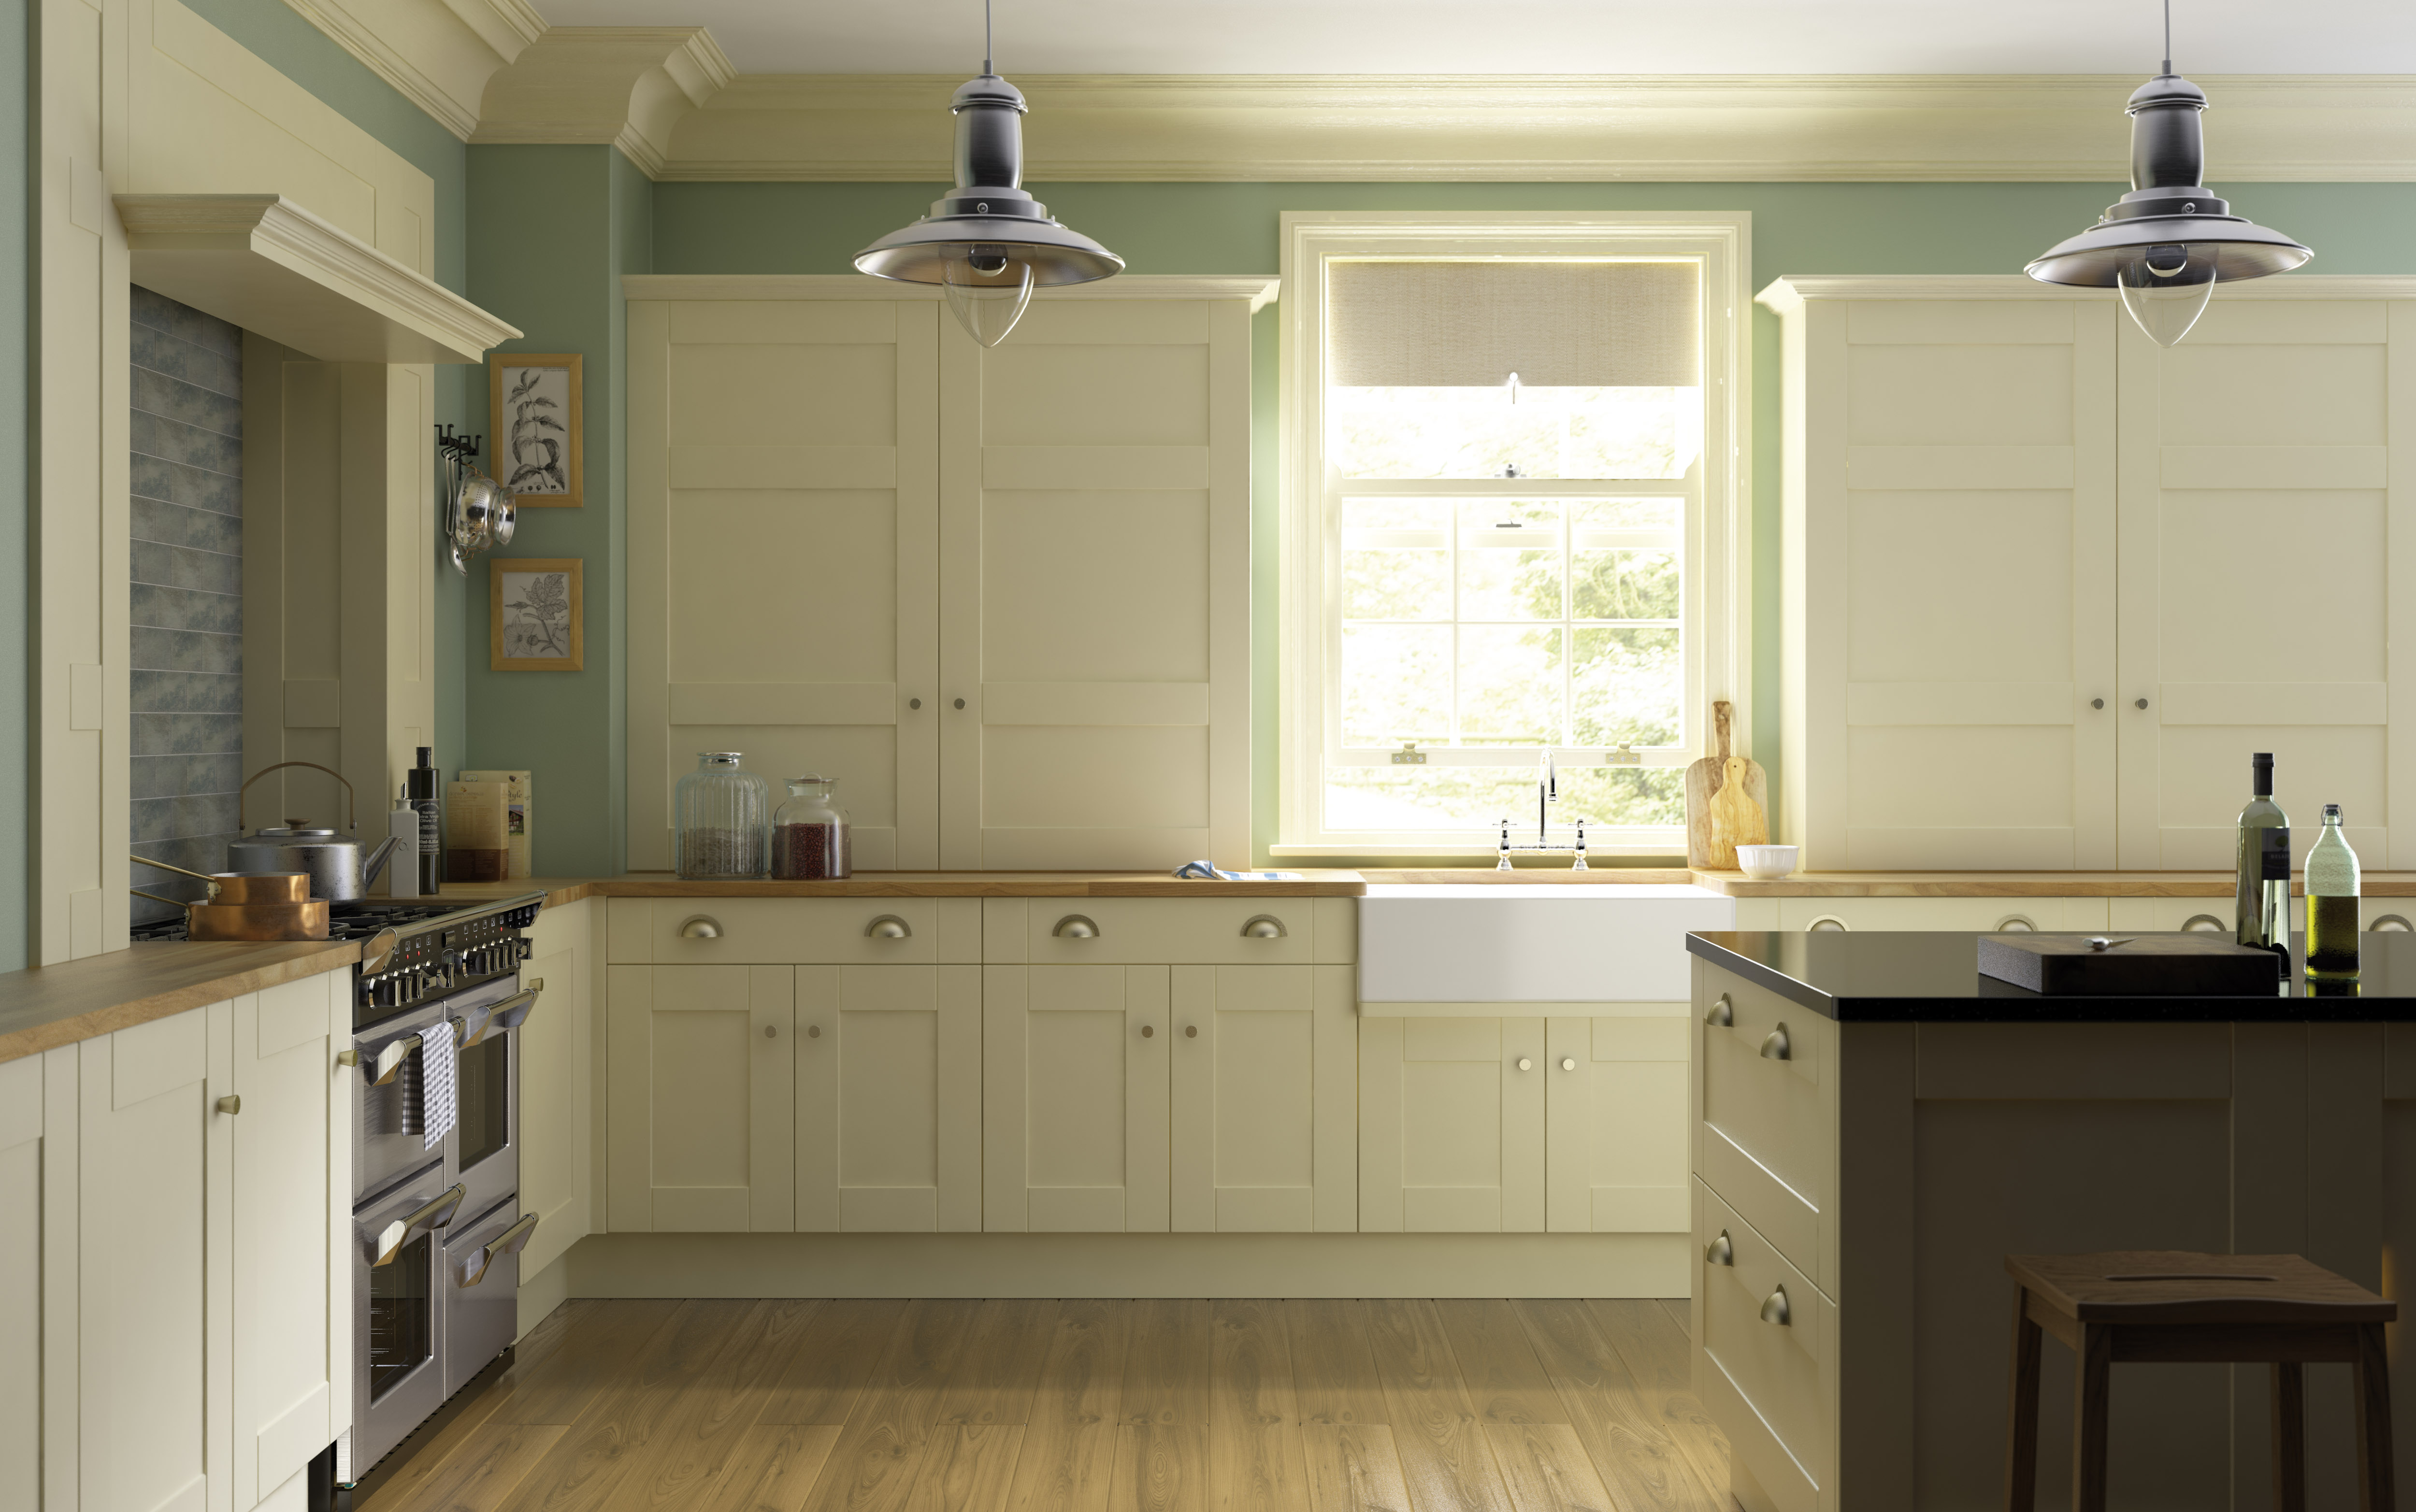 Apex kitchen cabinets in nj - Apex Kitchen Cabinets In Nj Kitchens Peter Galbraith Specialist Carpentry Joinery Download